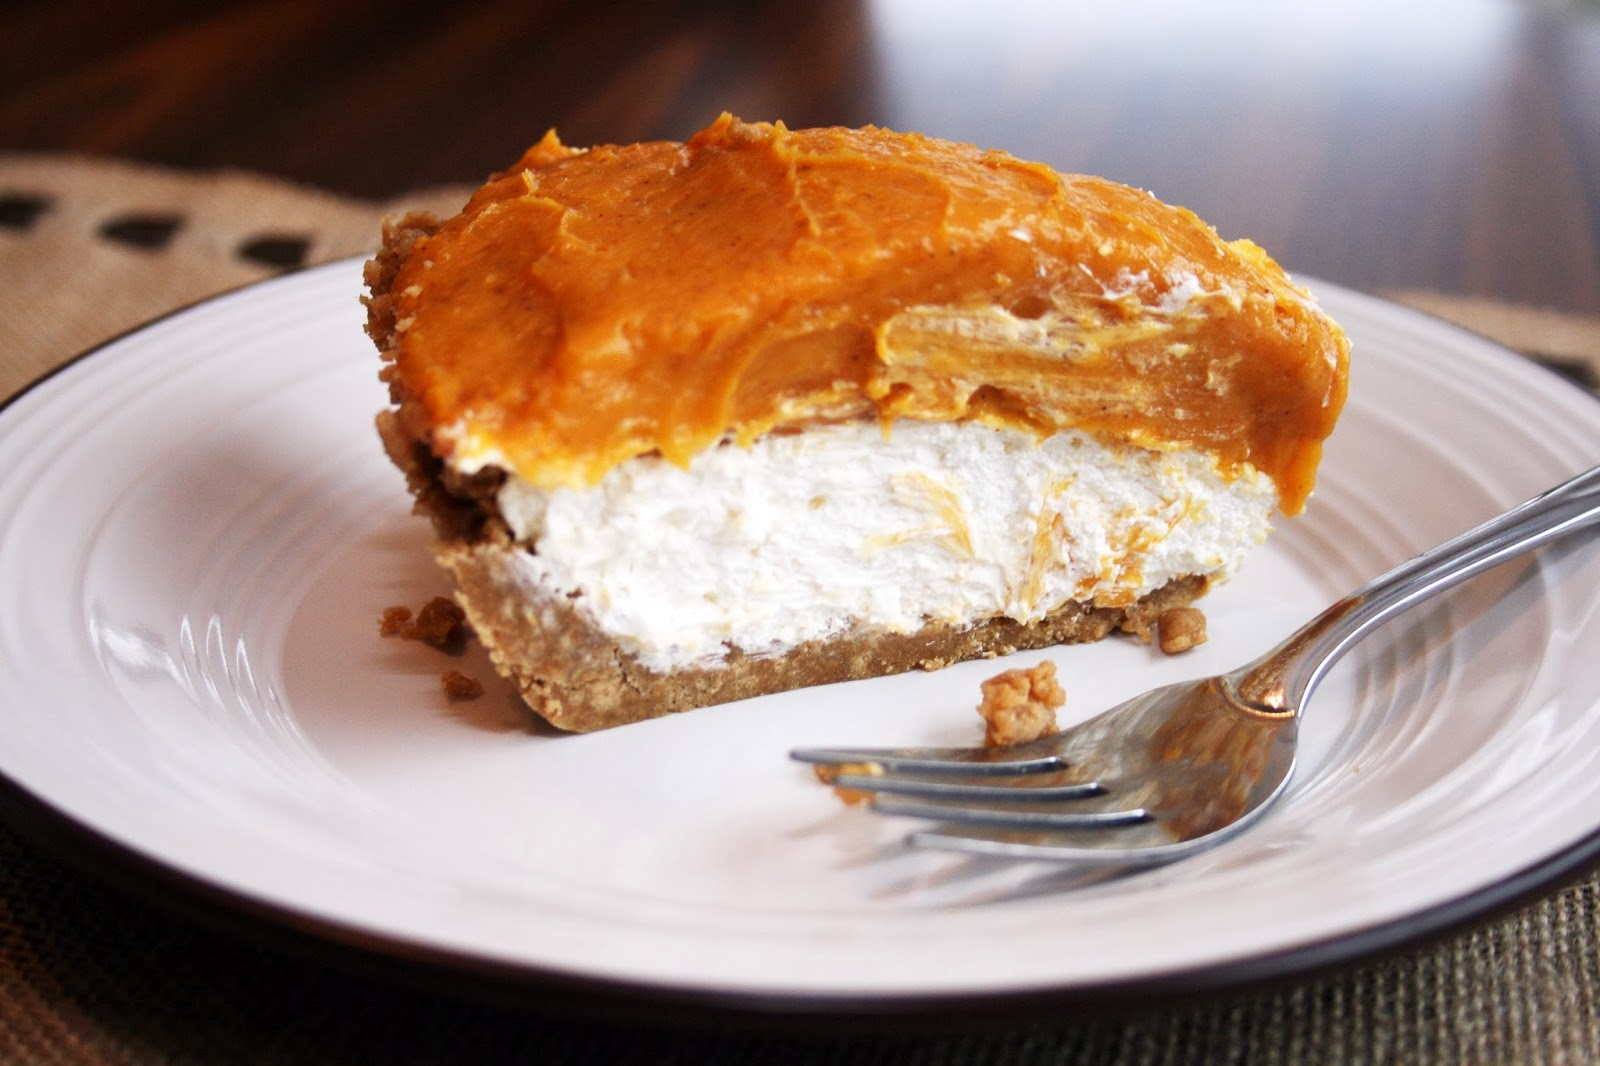 Lazy Gluten Free: Gluten Free Double Layer Pumpkin Pie